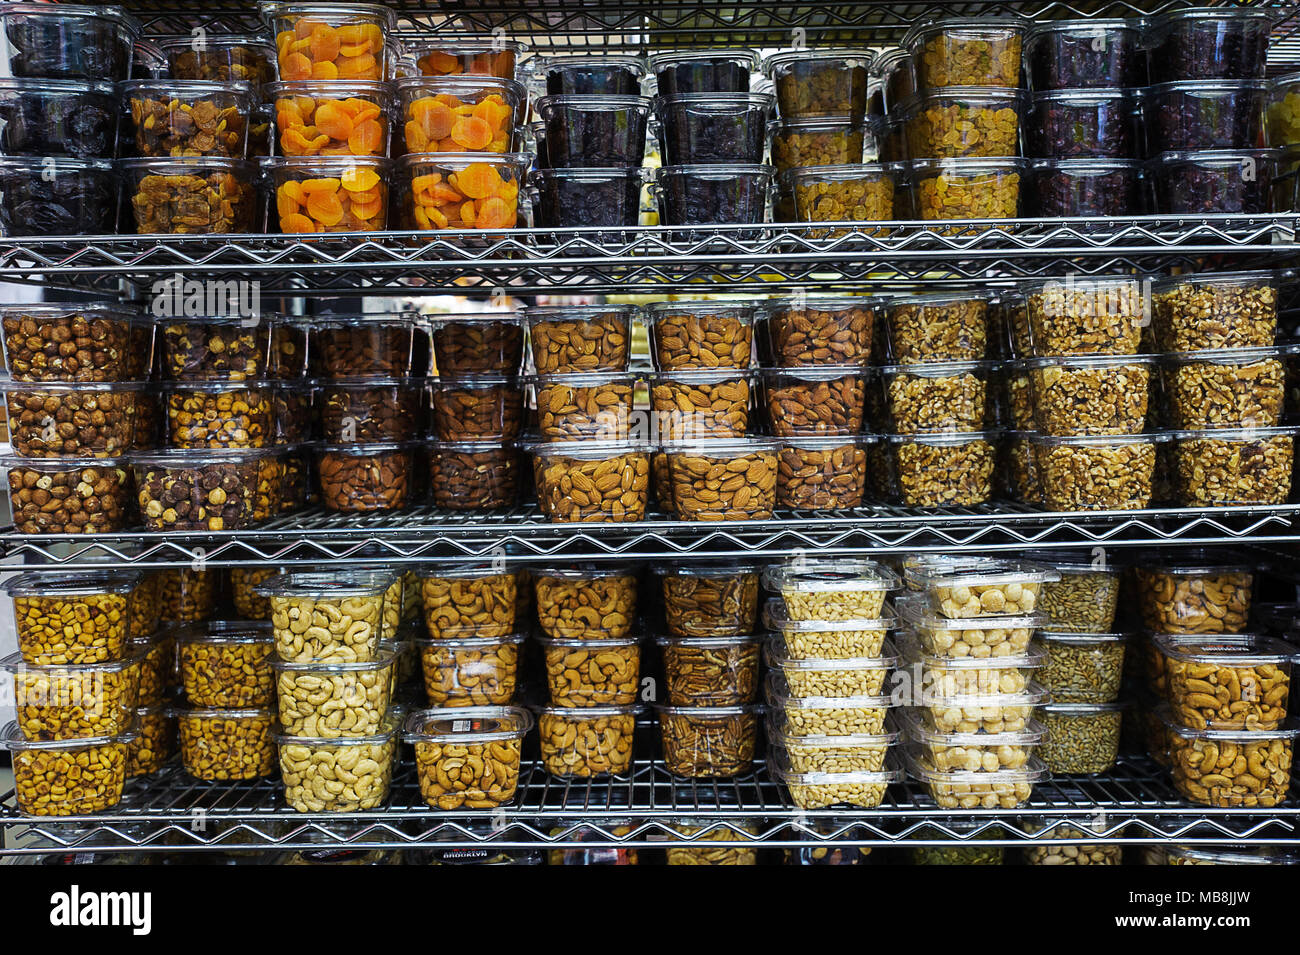 Pile of various dried fruit and nuts packaged in airtight transparent plastic containers for convenience and freshness, positioned on a metal rack Stock Photo